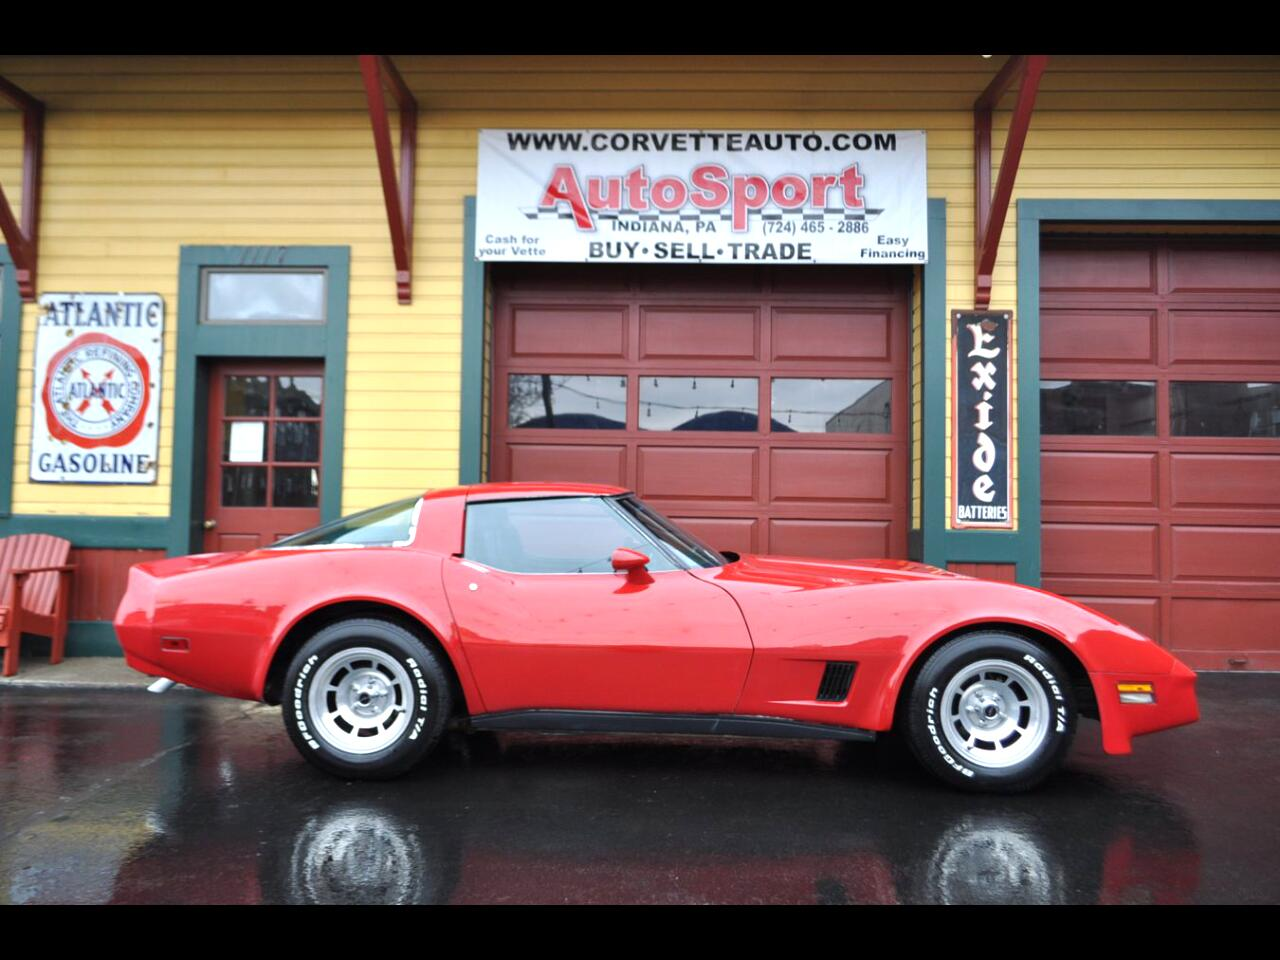 1981 Chevrolet Corvette Extremely Rare Colors Red/Blue Interior!